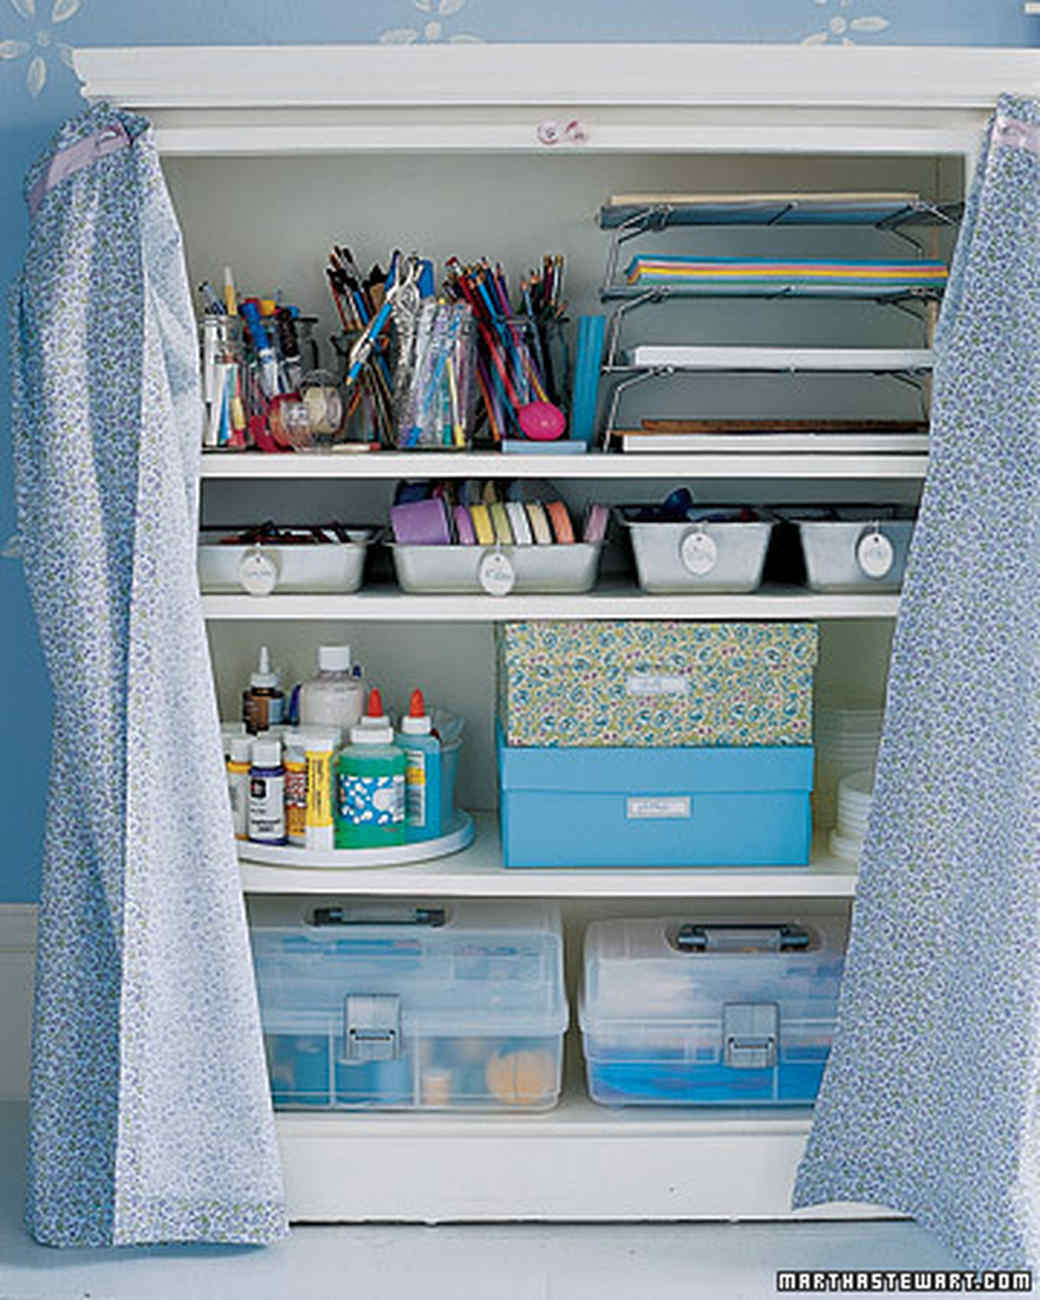 office closet shelving. Office Closet Storage. Storage S Shelving E